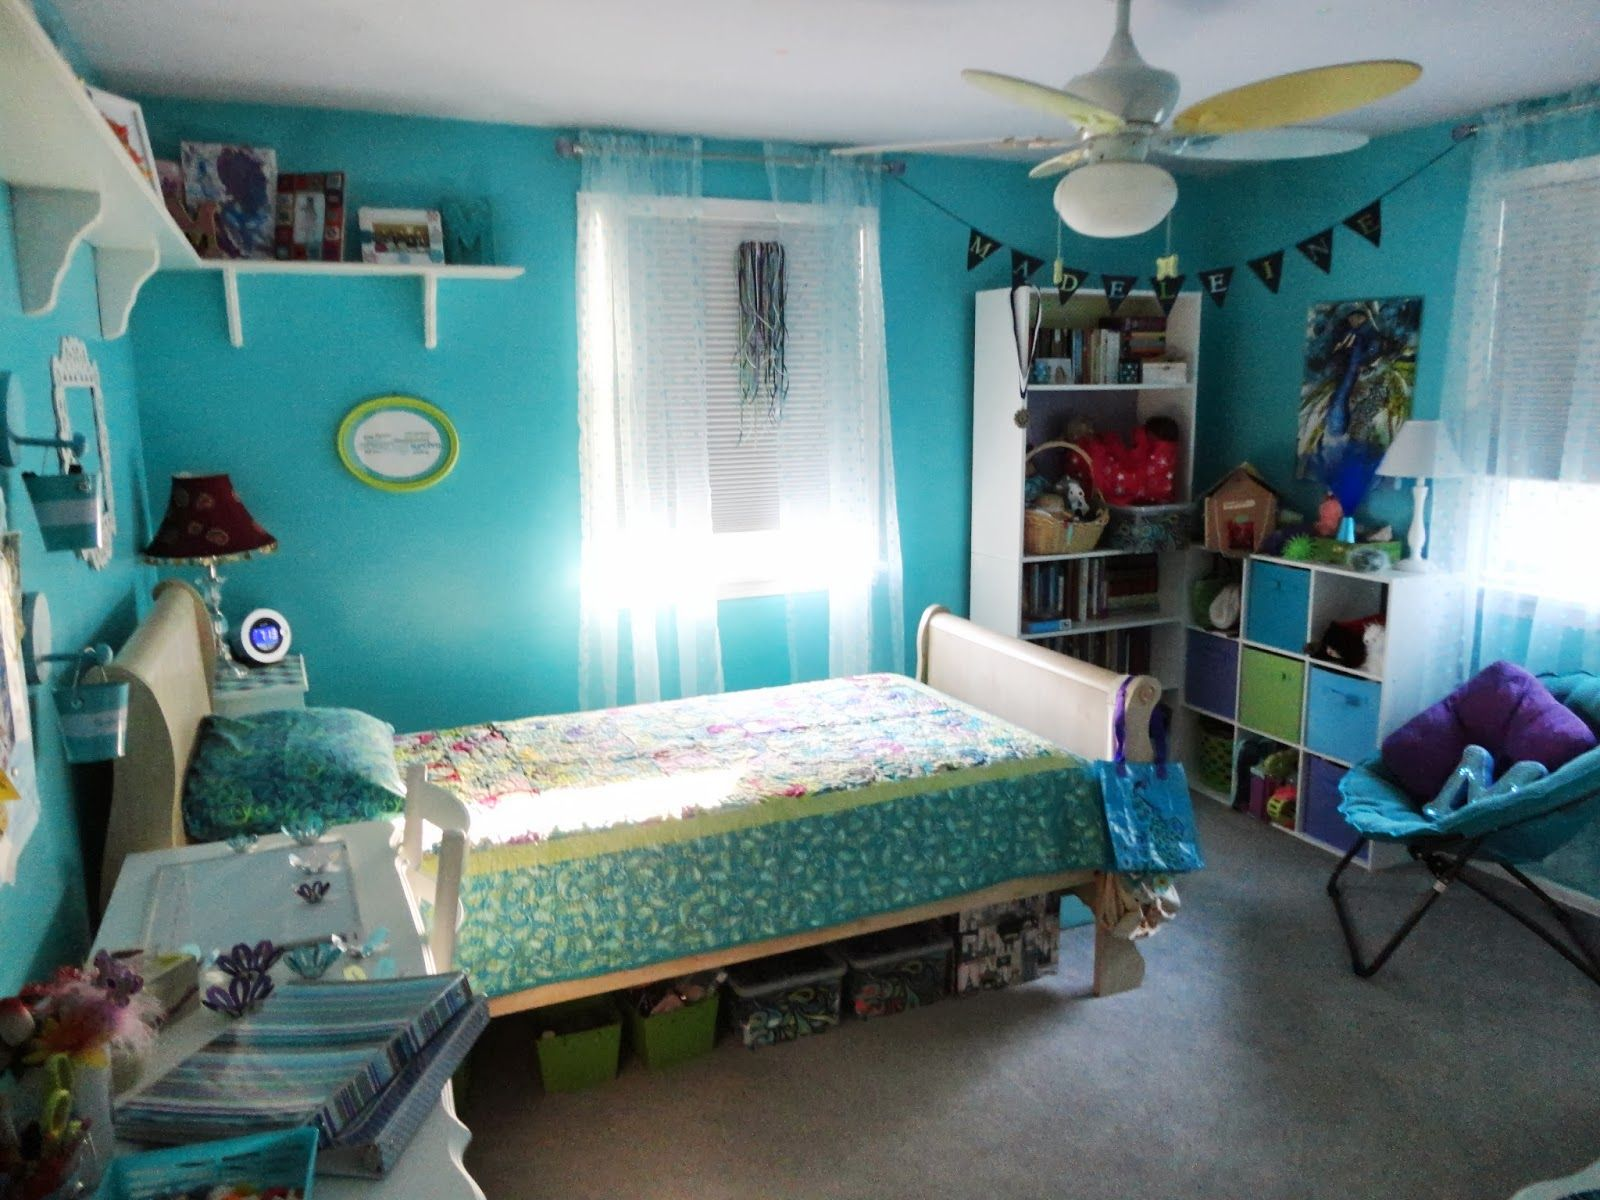 Blue and green bedrooms for girls - Bedroom Ideas For Teens